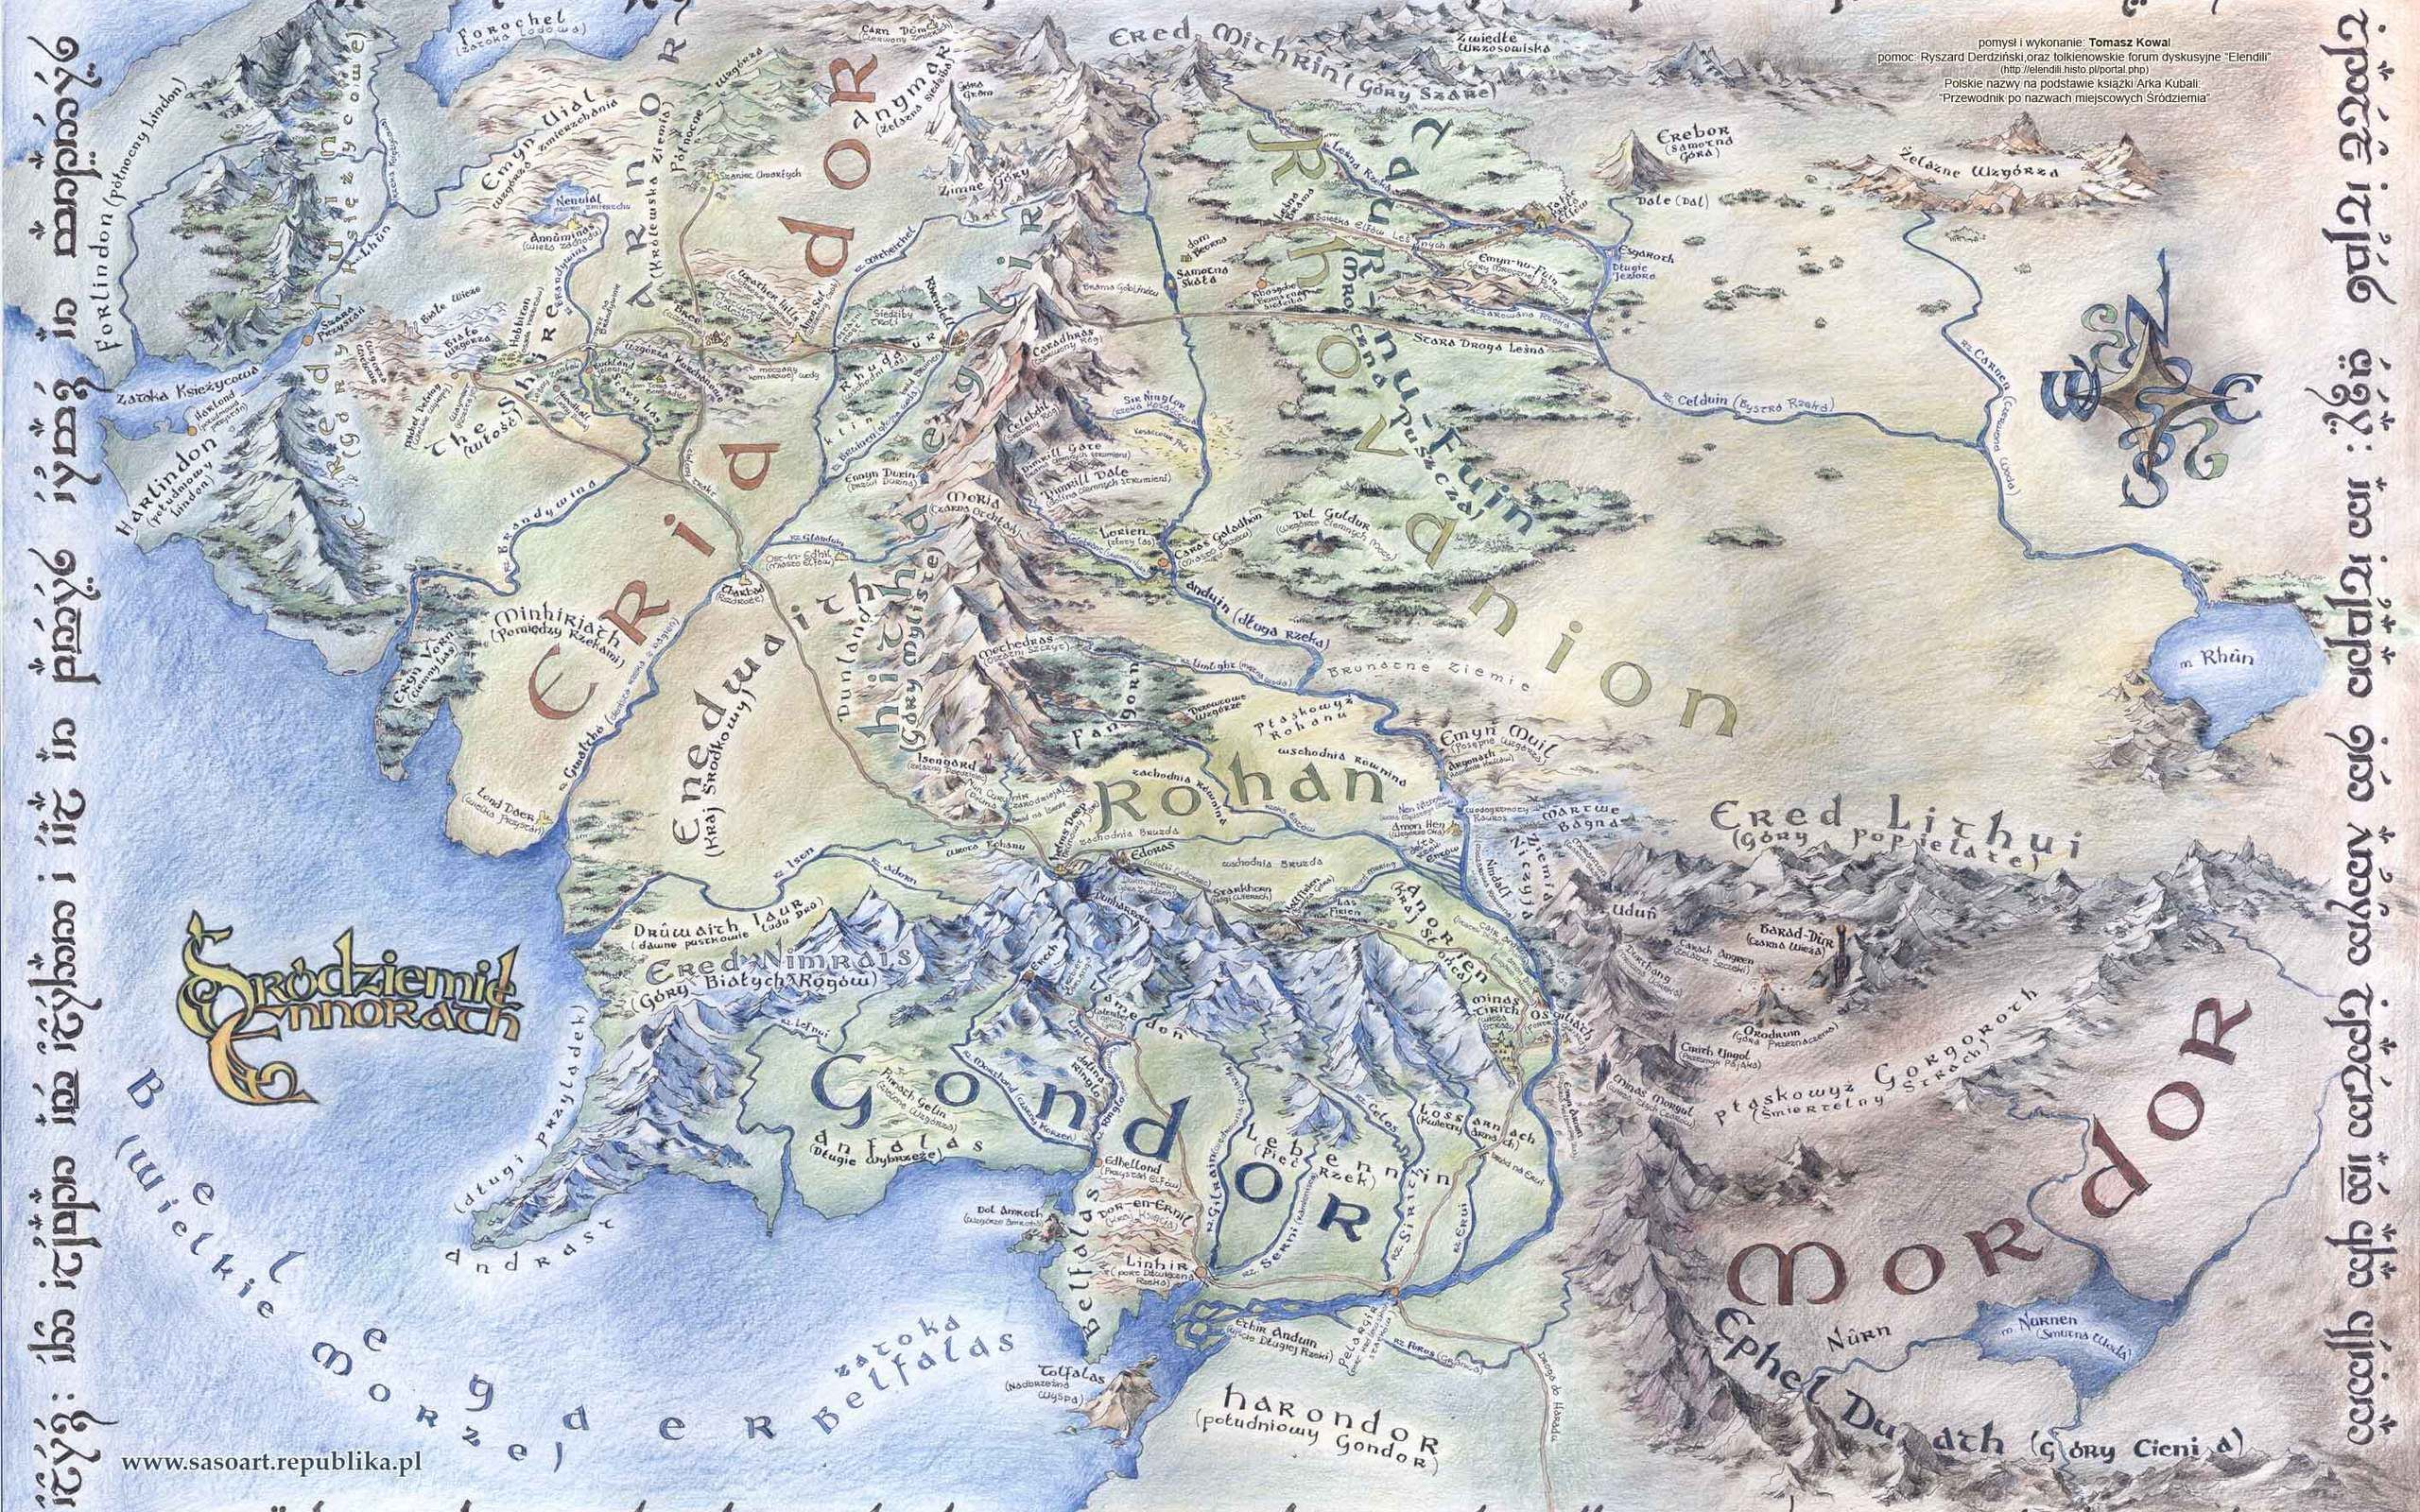 Large detailed map of Middleearth Desktop wallpapers 1920x1080